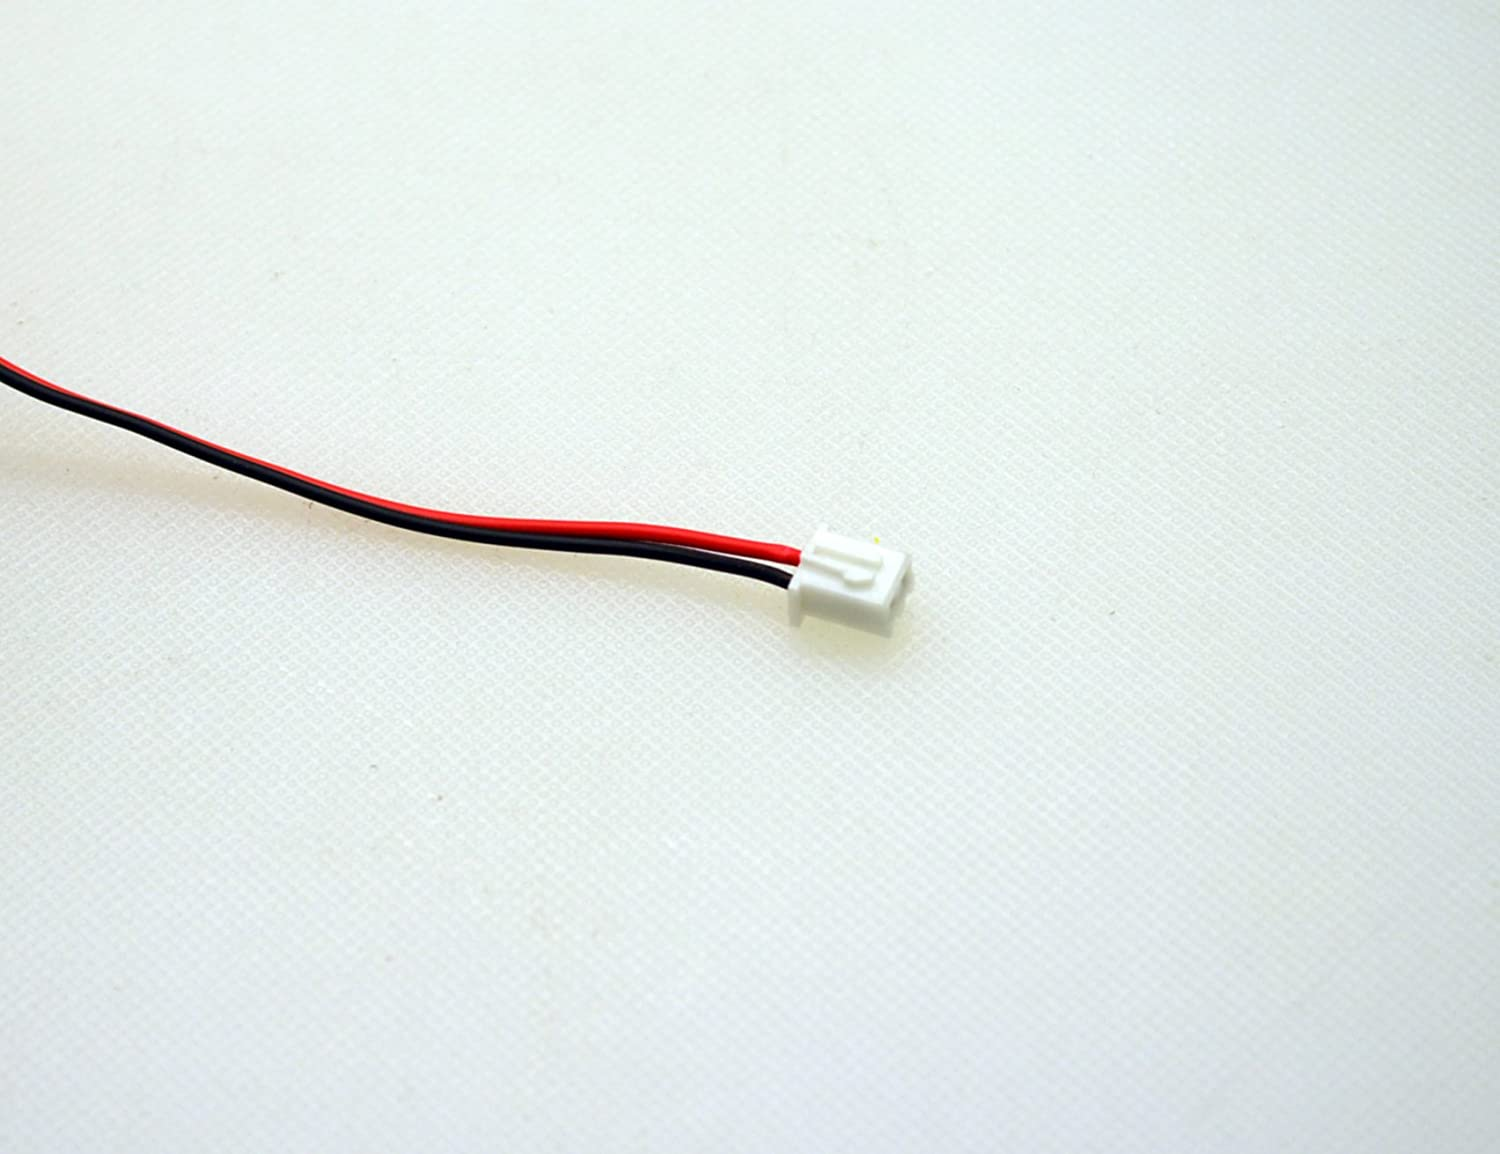 DC 12V 0.1A 40mm x 40mm 2 Pin Connector PC CPU Computer Case Brushless DC Fan